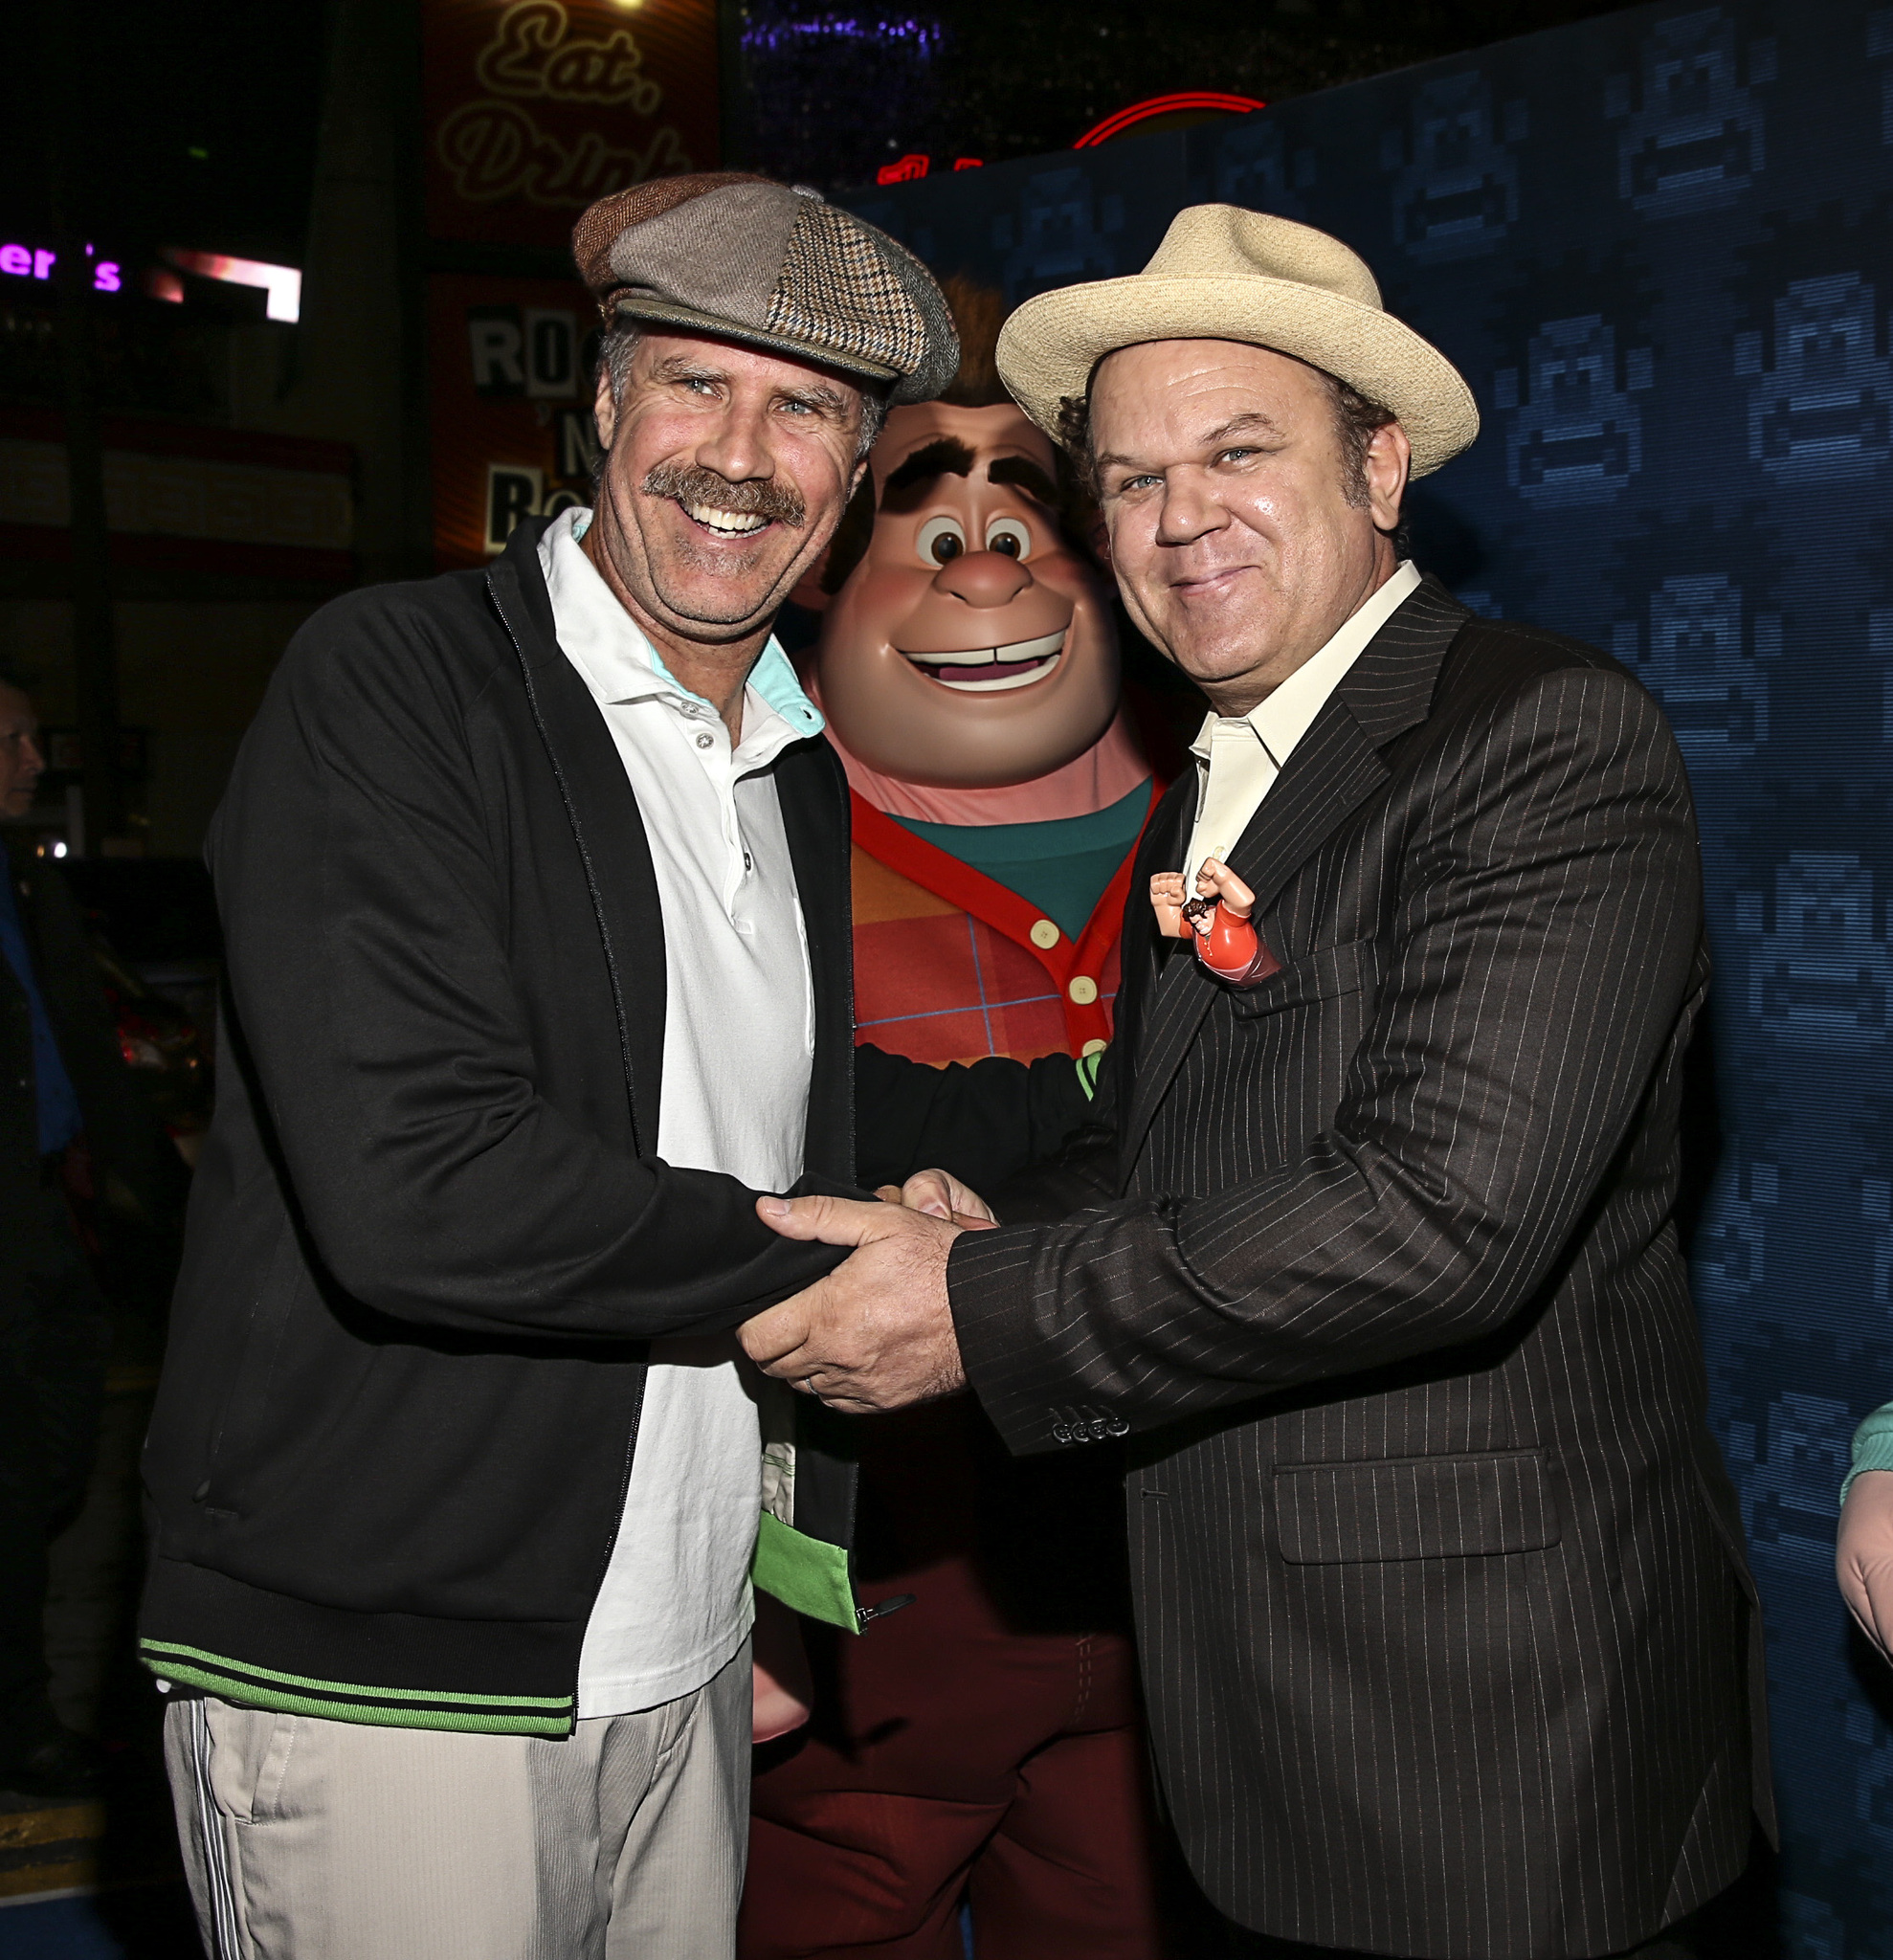 John C. Reilly and Will Ferrell at an event for Wreck-It Ralph (2012)